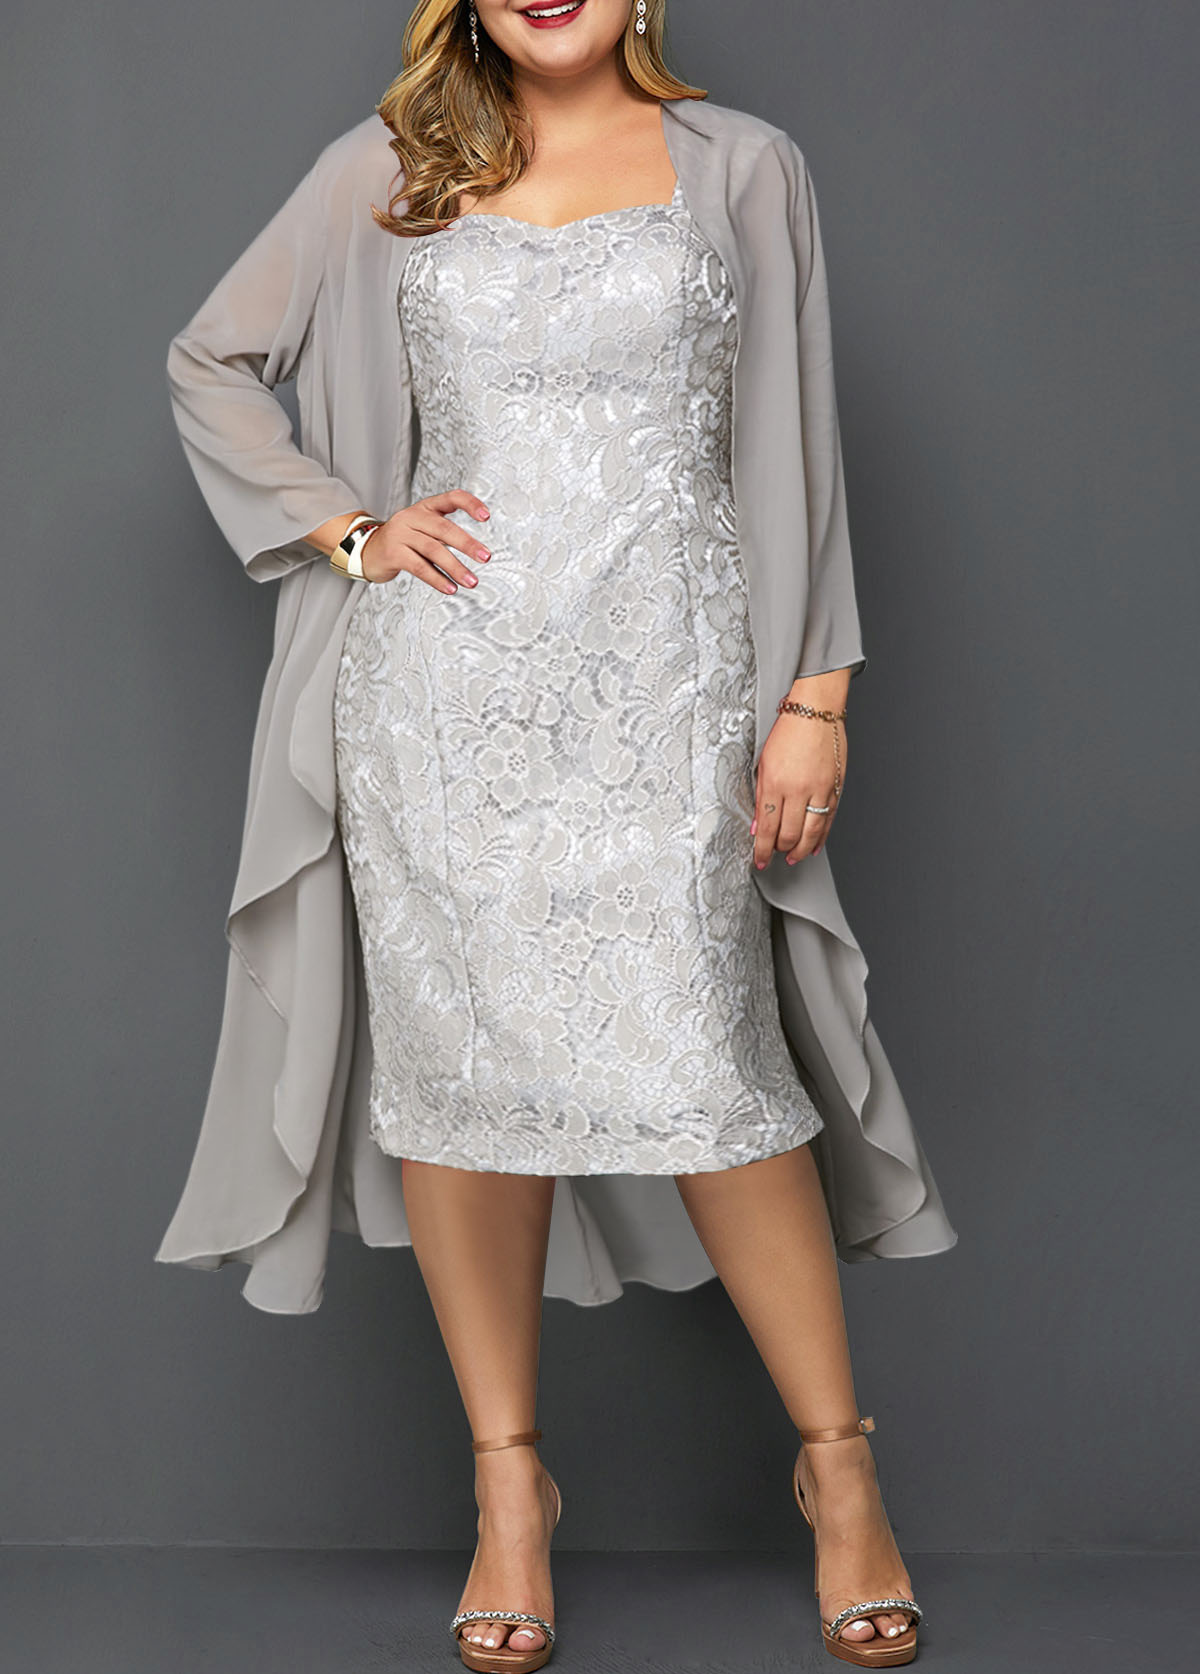 Plus Size Chiffon Cardigan and Lace Dress | modlily.com - USD $36.49